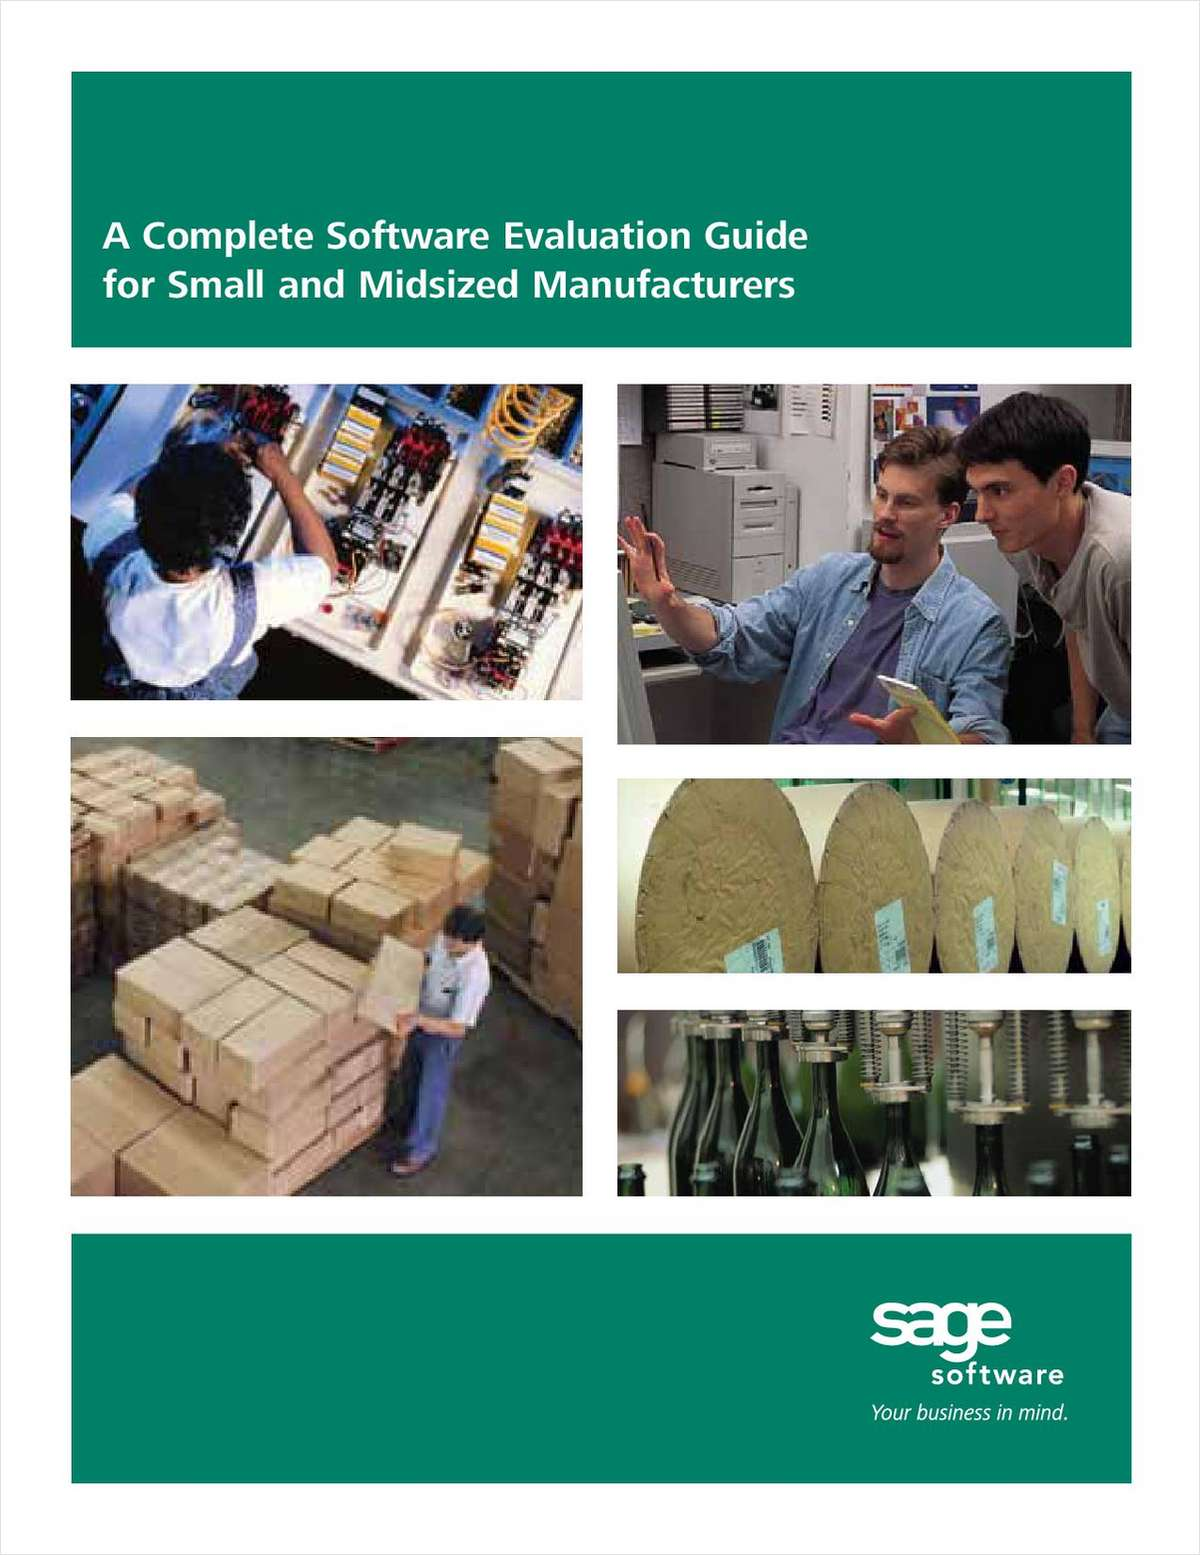 Complete Software Guide for Small to Midsized Manufacturers